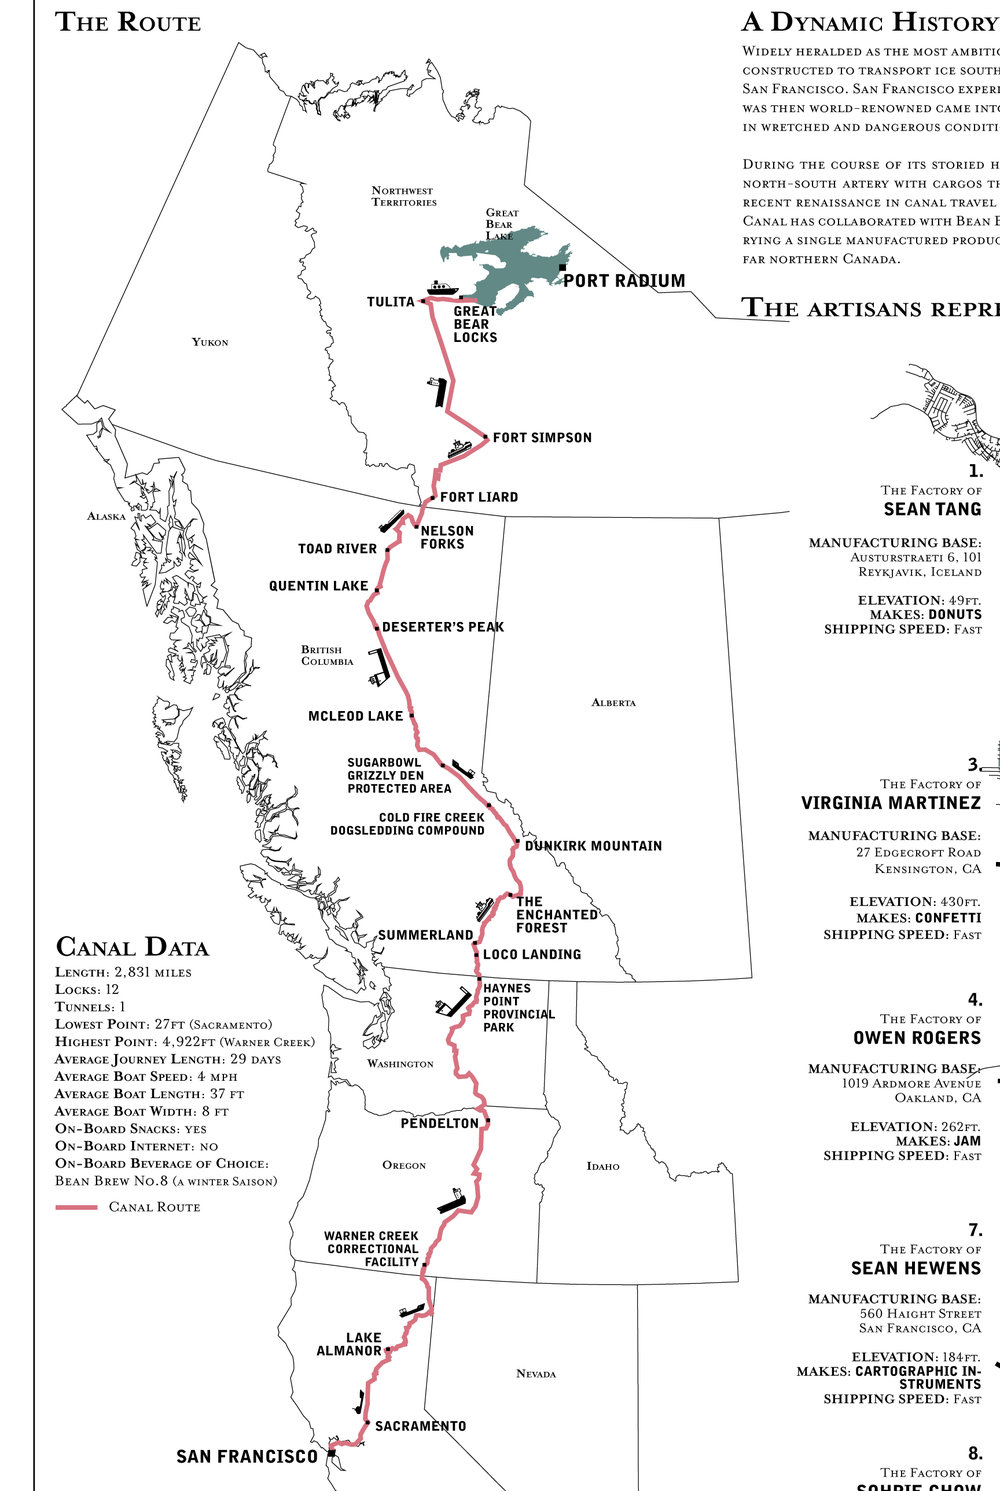 The canal's route